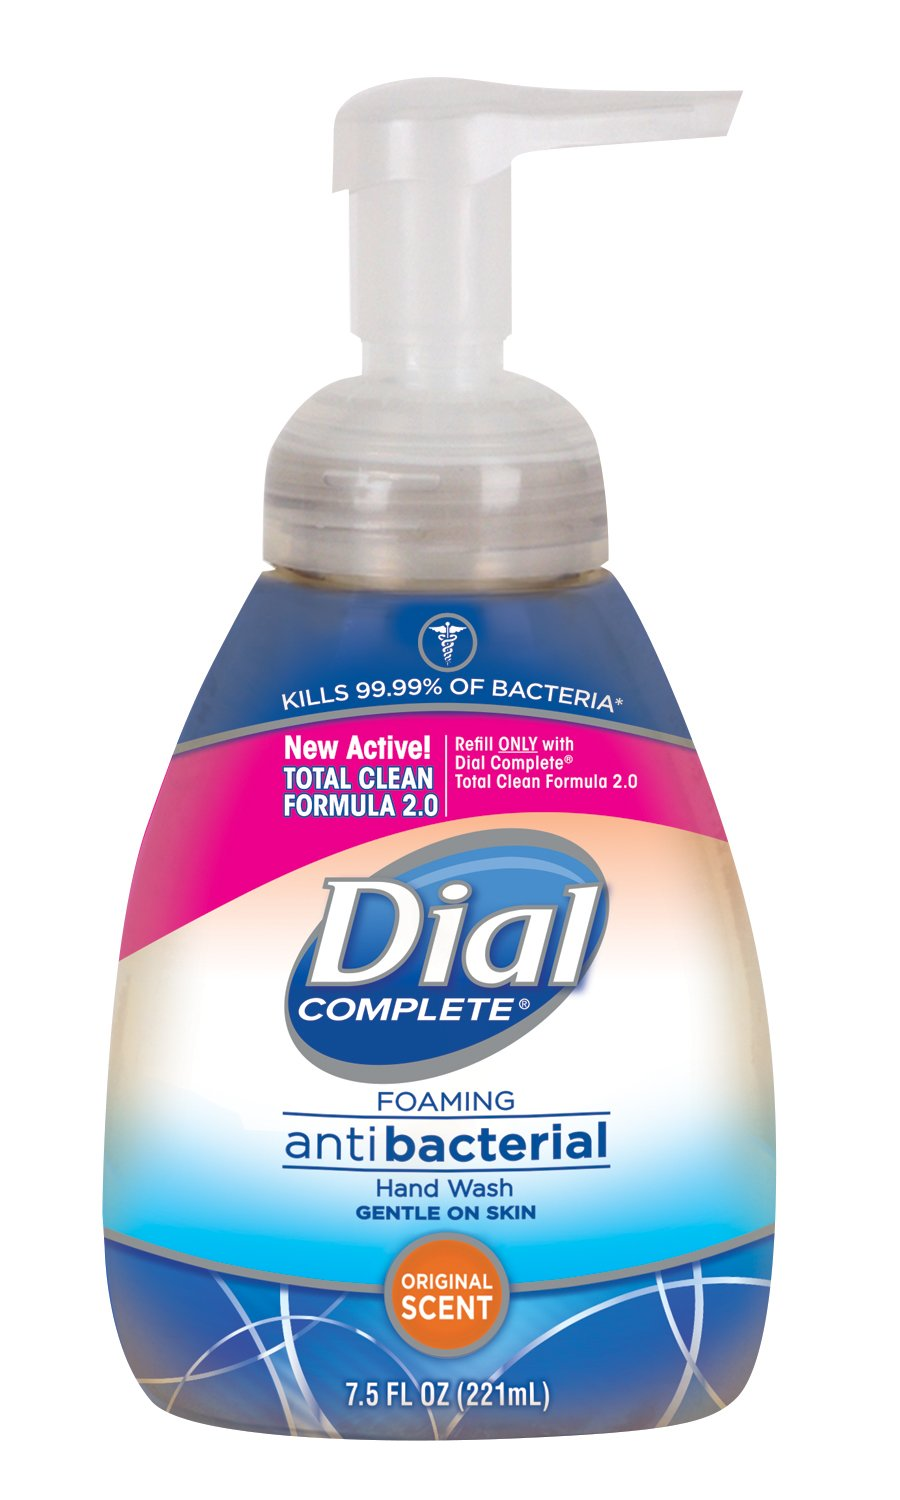 Dial Complete Antibacterial Foaming Hand Soap, Original Scent, 7.5 Fluid Ounces (Pack of 8)